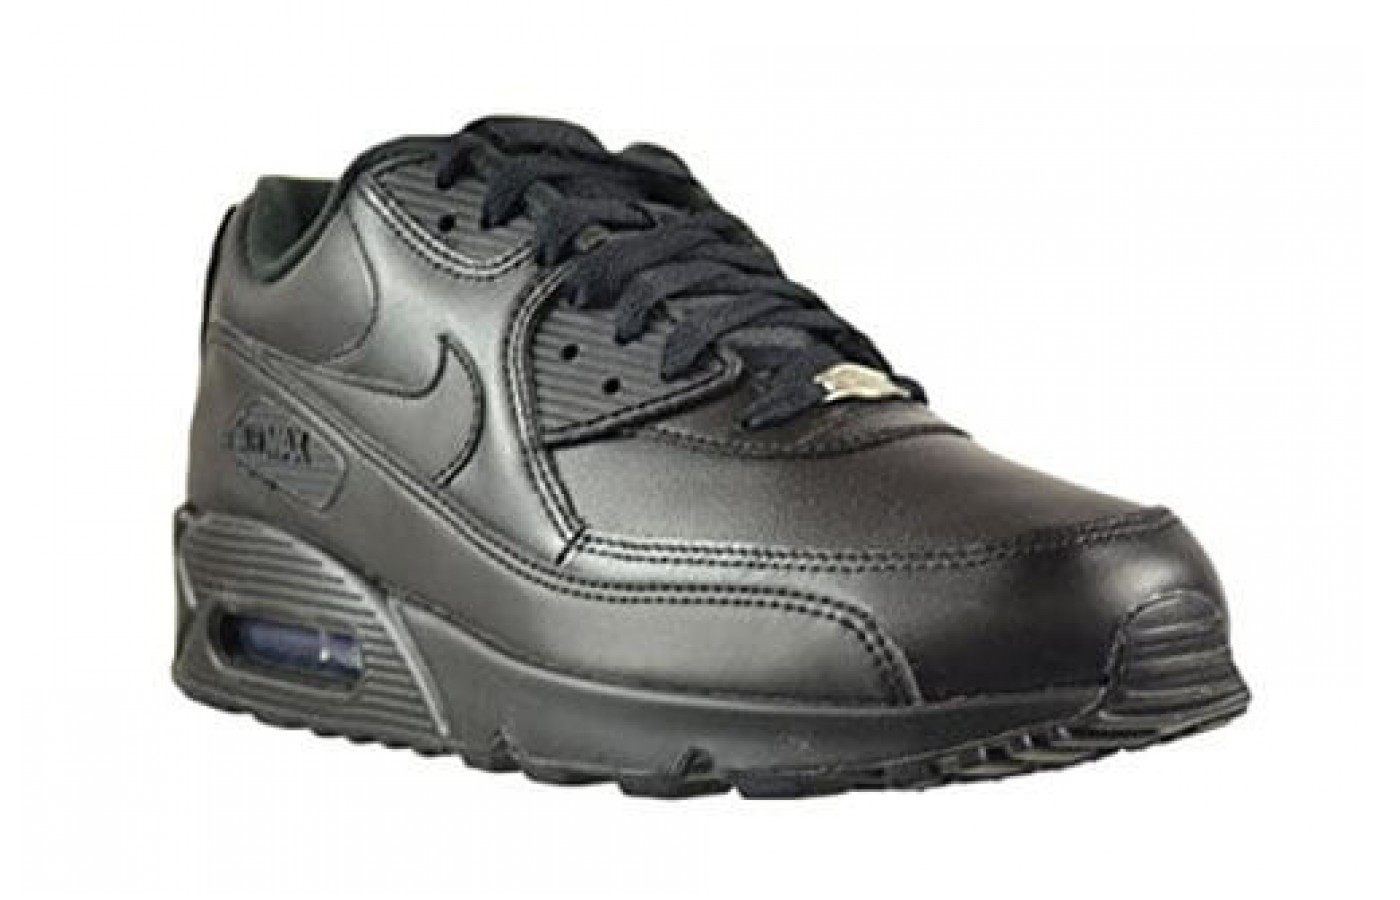 b77336c3be1 Nike Air Max 90 Leather. This shoe is great for logging miles or as a  fashionable accessory for a night out ...